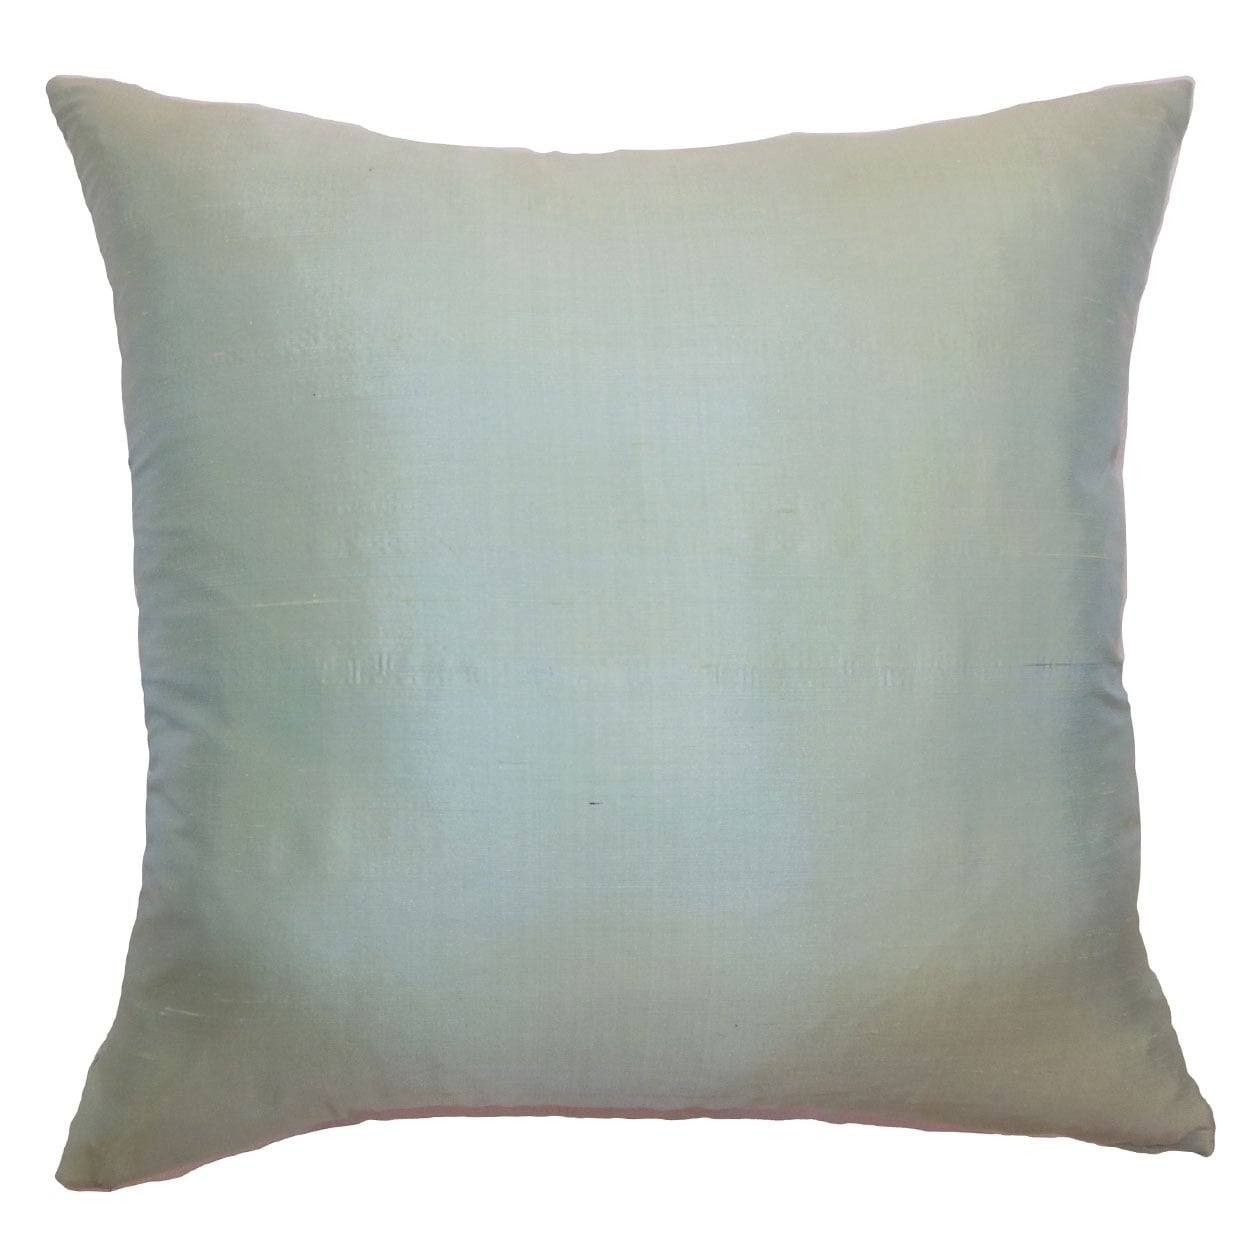 Constance Seafoam Solid 18-inch Feather and Down Filled Throw Pillow (20 x 20)